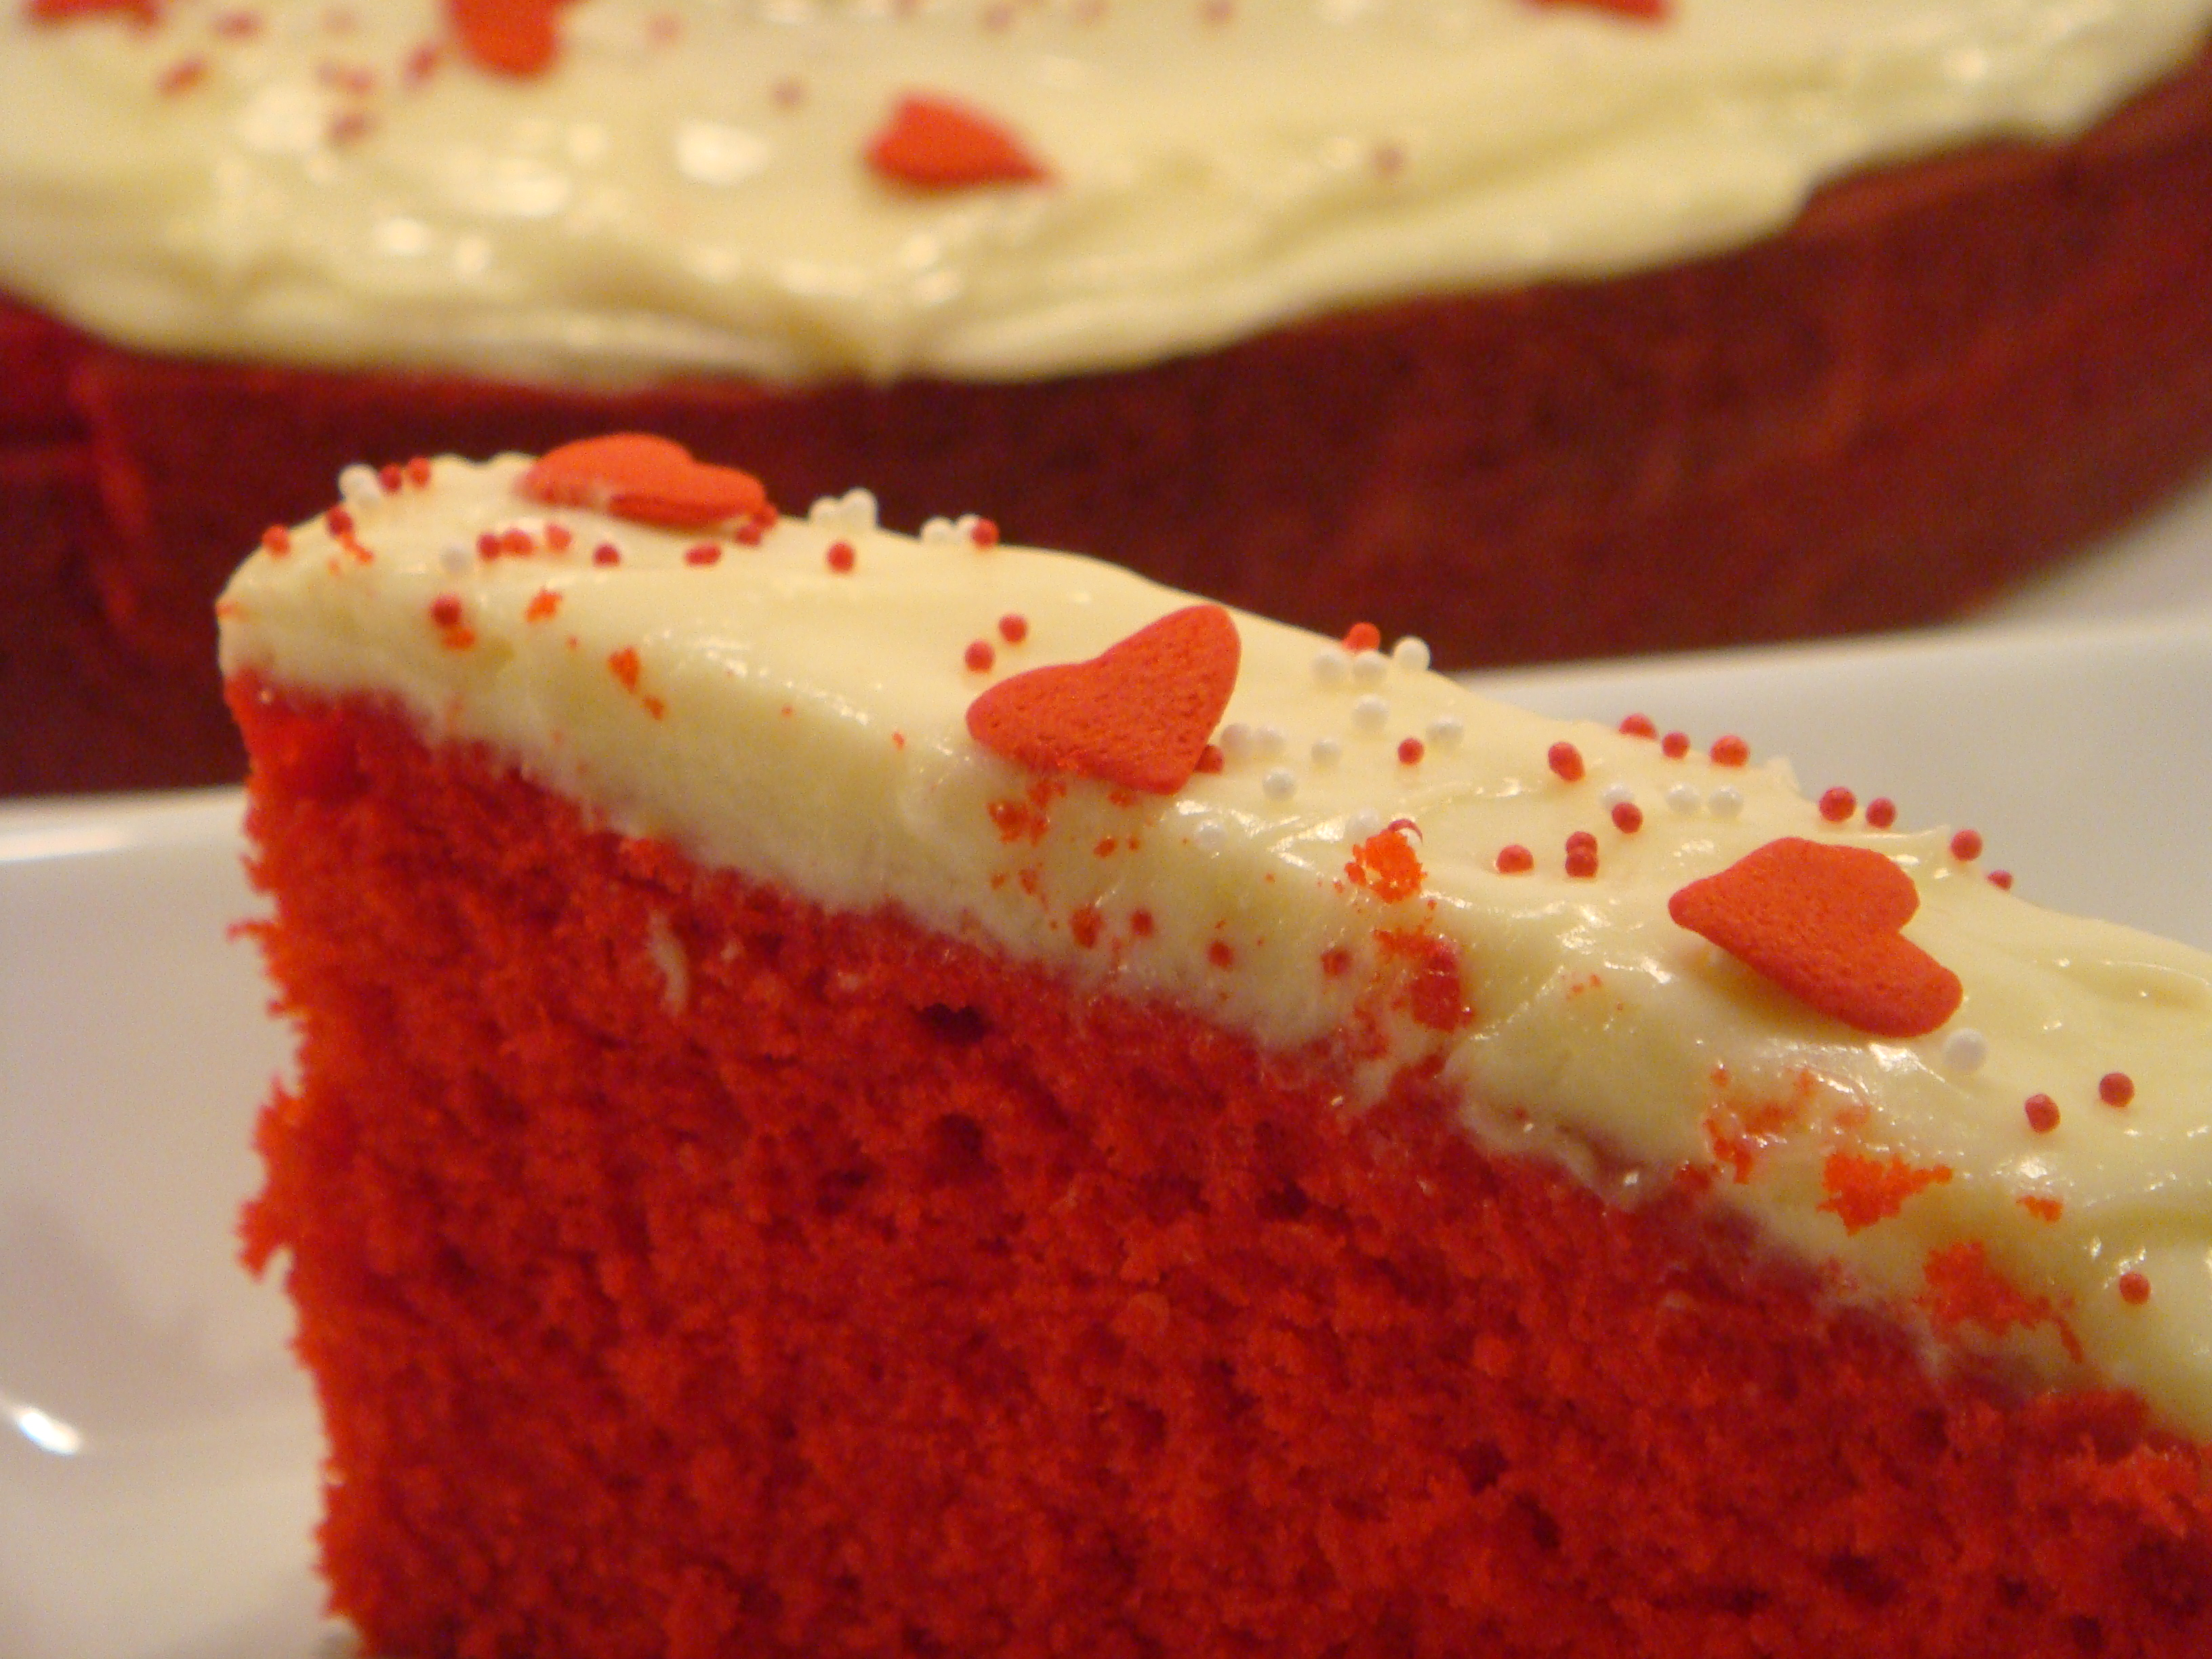 FileHappy Valentines Day rose red velvet cakejpg Wikimedia